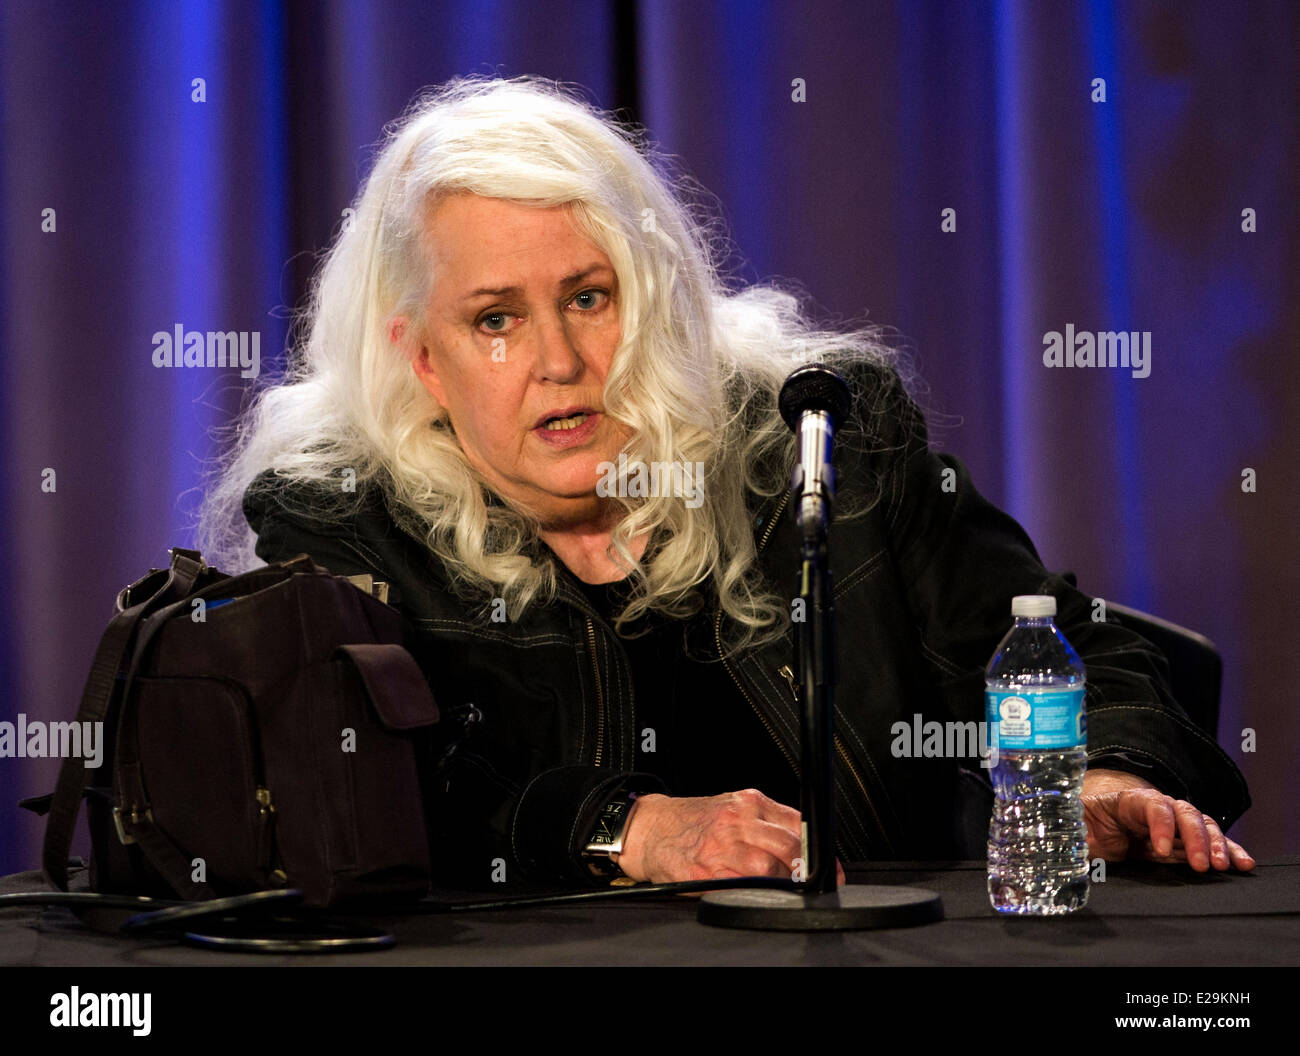 Los Angeles, California, USA. 17th June, 2014. Jefferson Airplane singer GRACE SLICK discusses her career in music Stock Photo